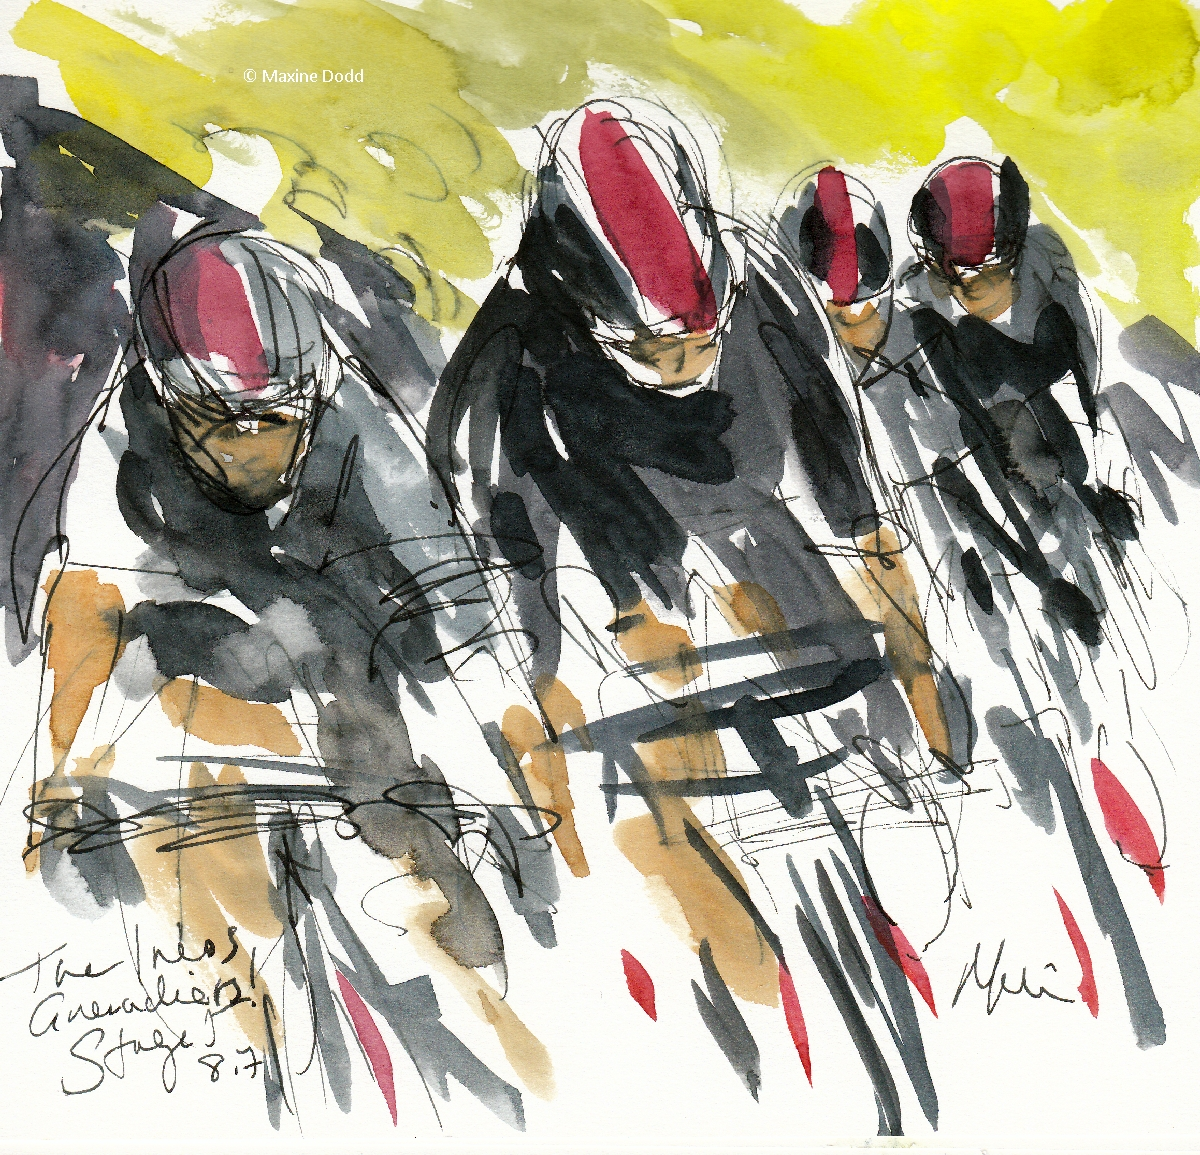 Ineos Grenadiers, 8.7km, watercolour, pen and ink by Maxine Dodd